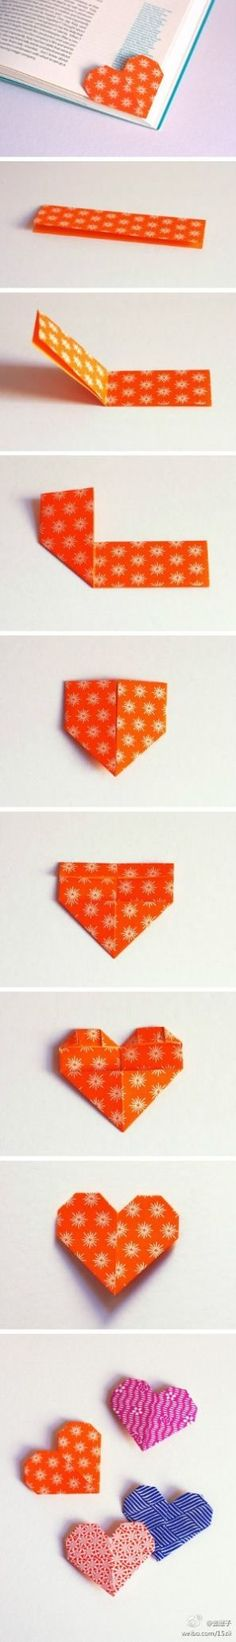 Origami Bookmark. Cute and easy to do. :-) Bianca@itti: